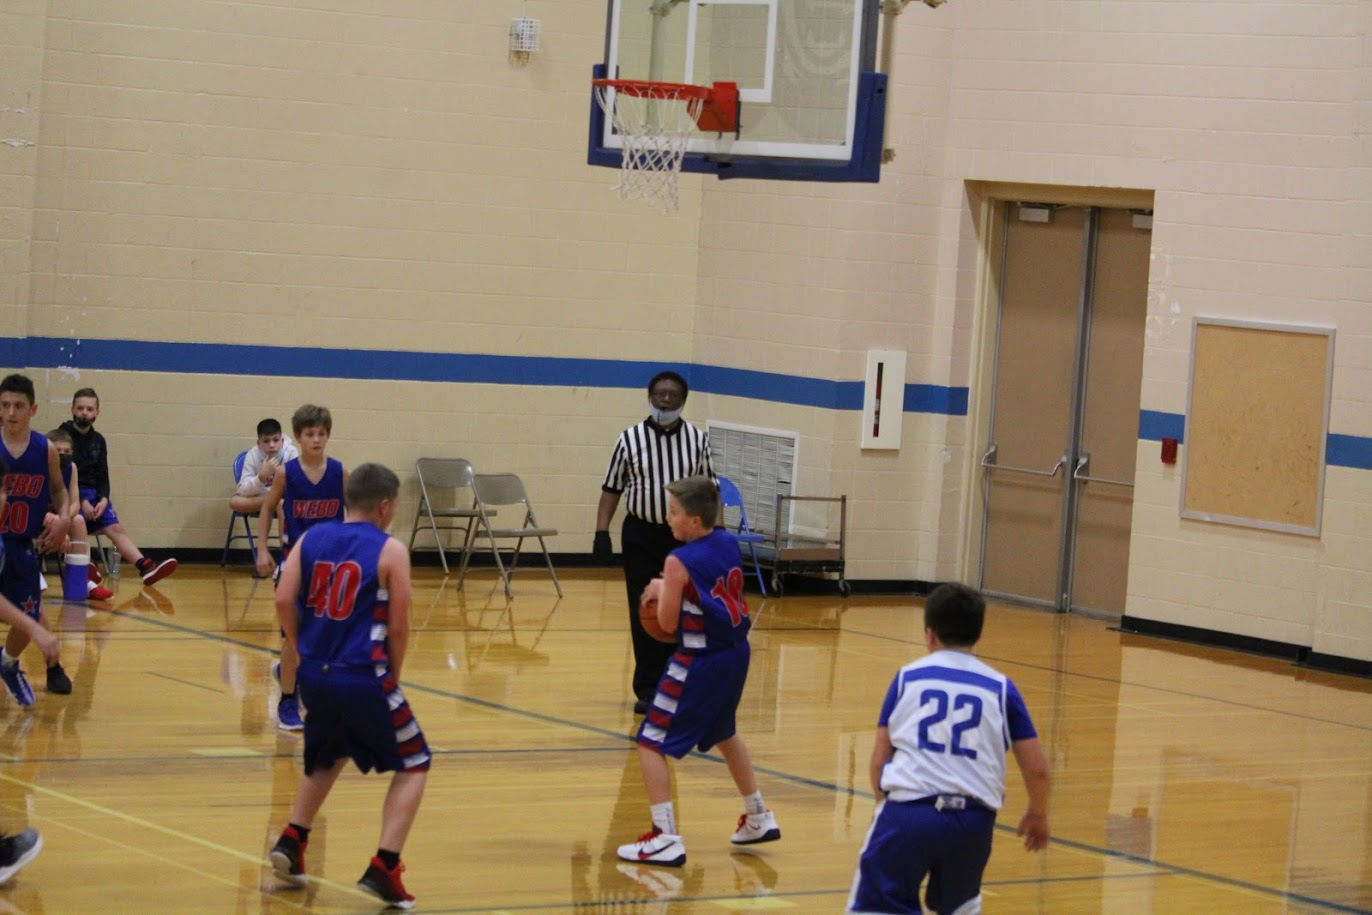 Blackhawks too much for 7th and 8th grade Stars